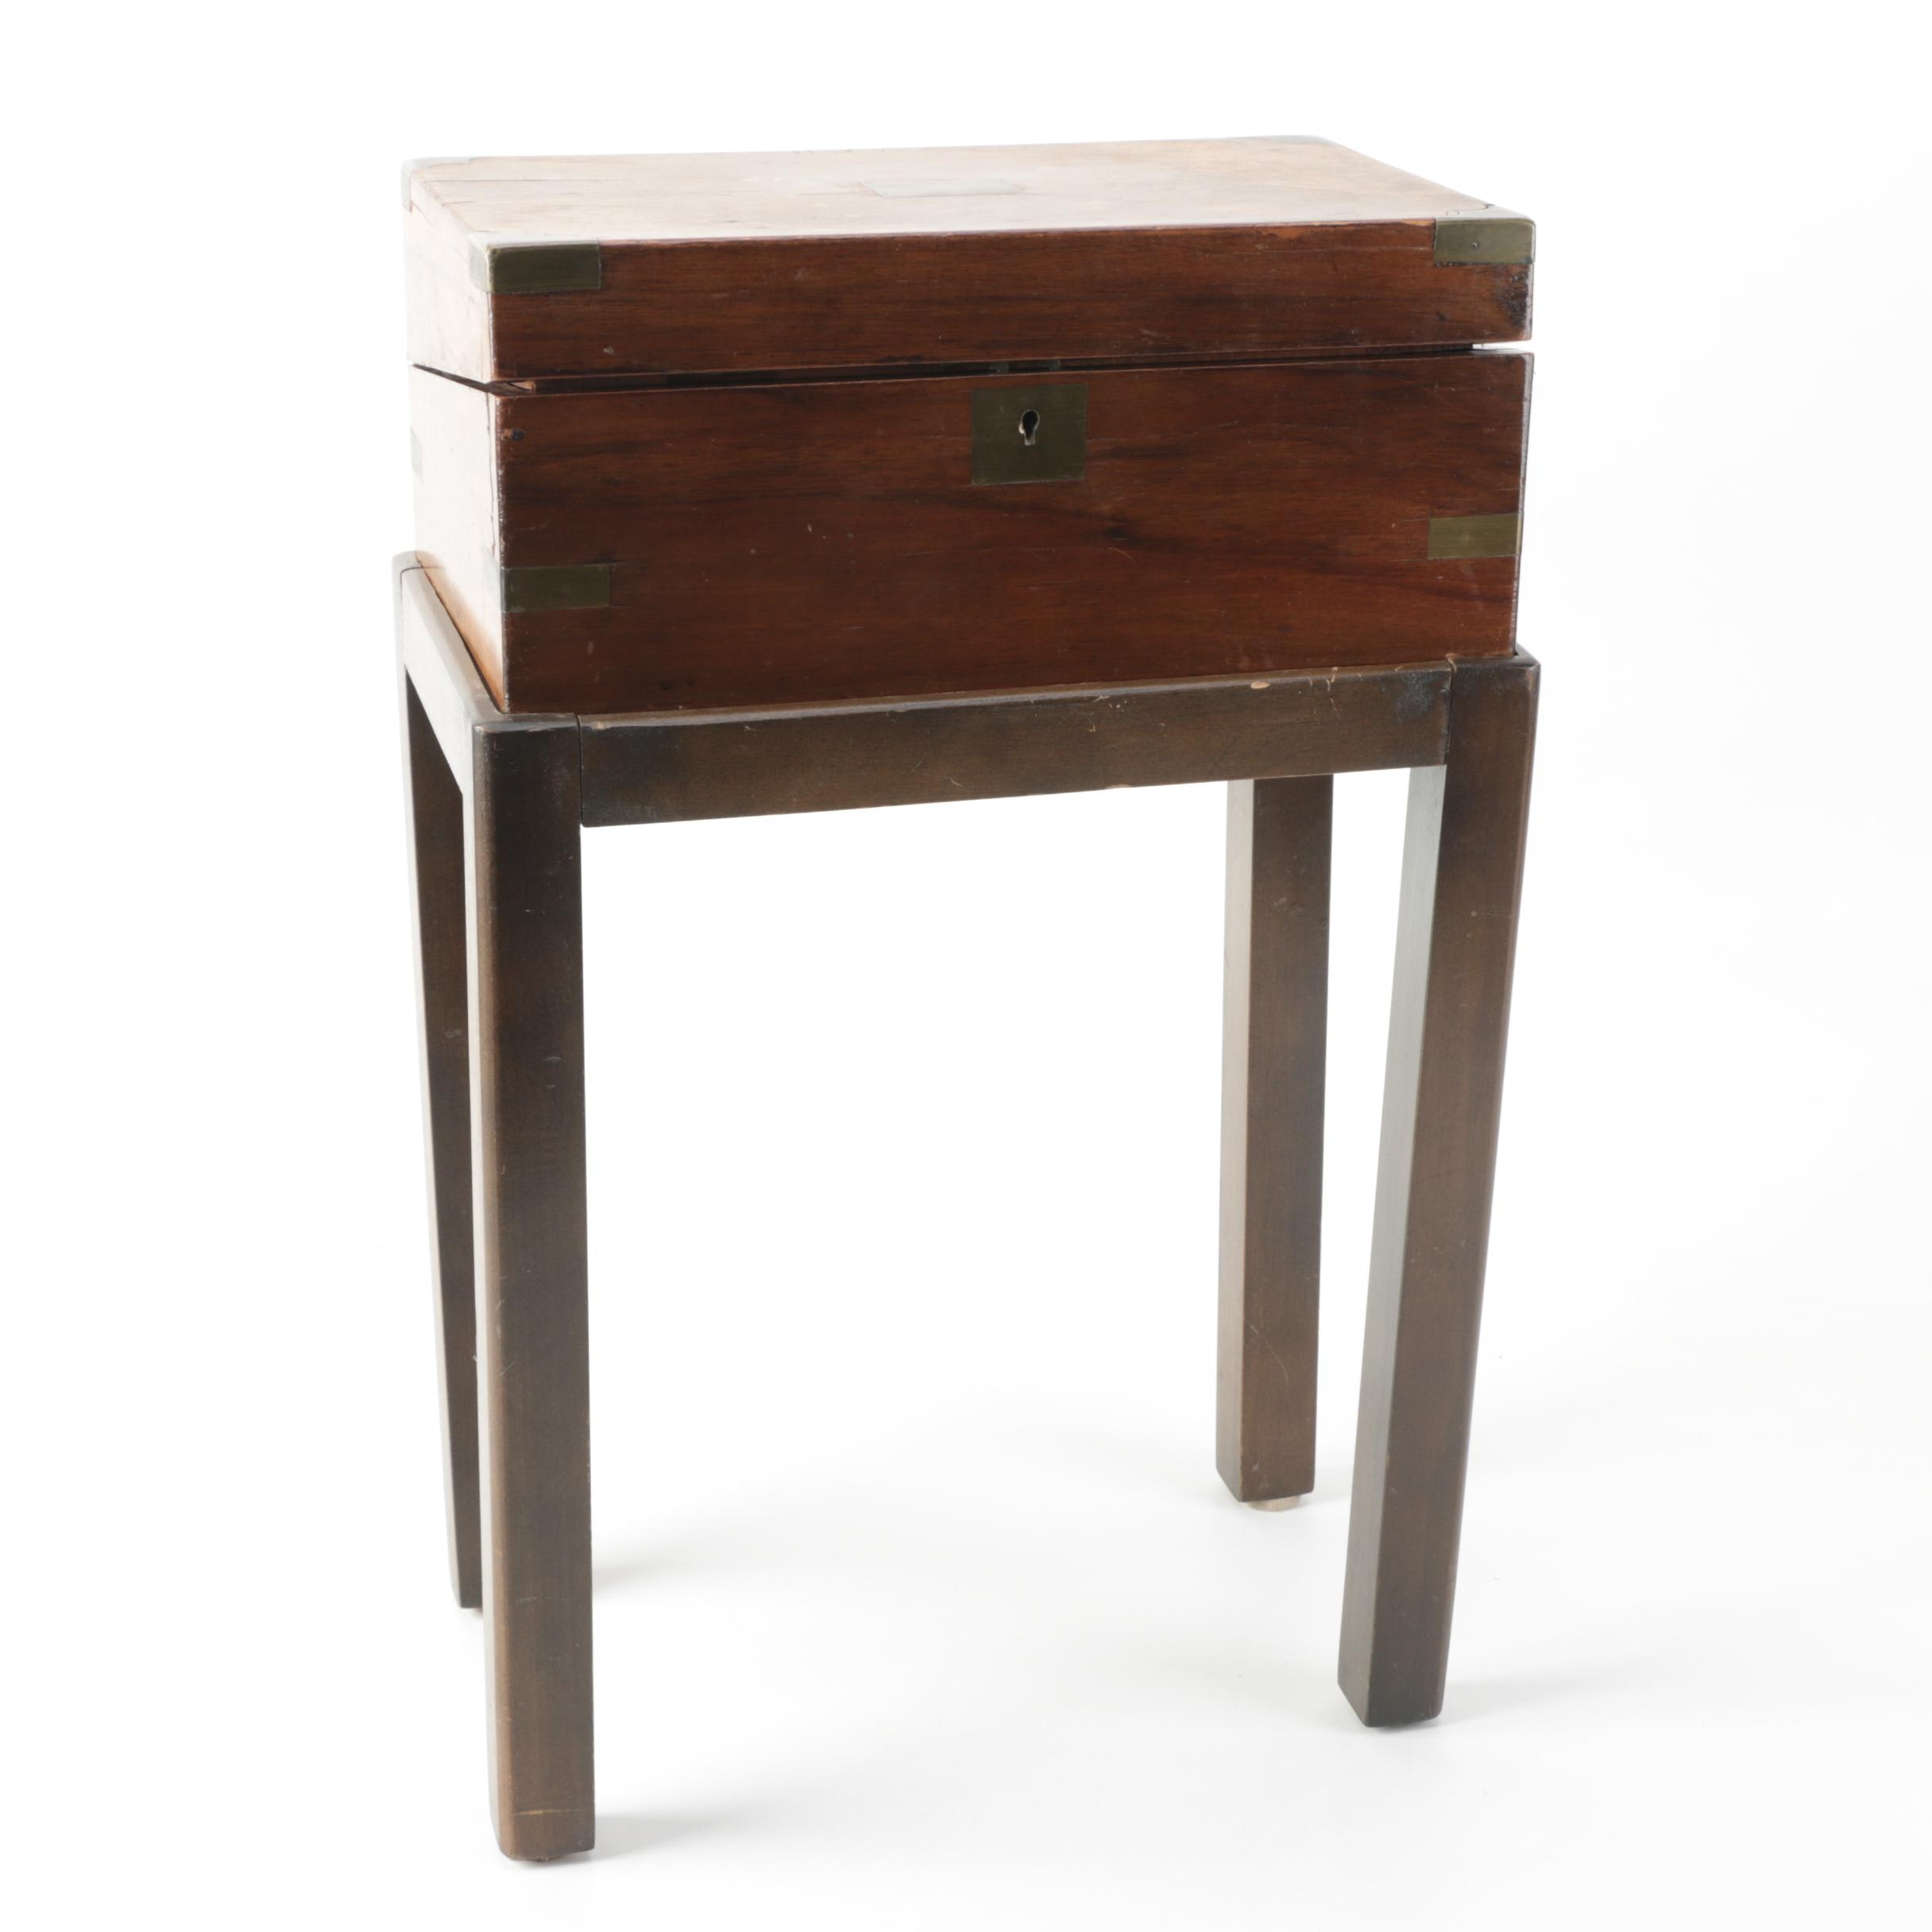 Antique Writing Lap Desk on Stand